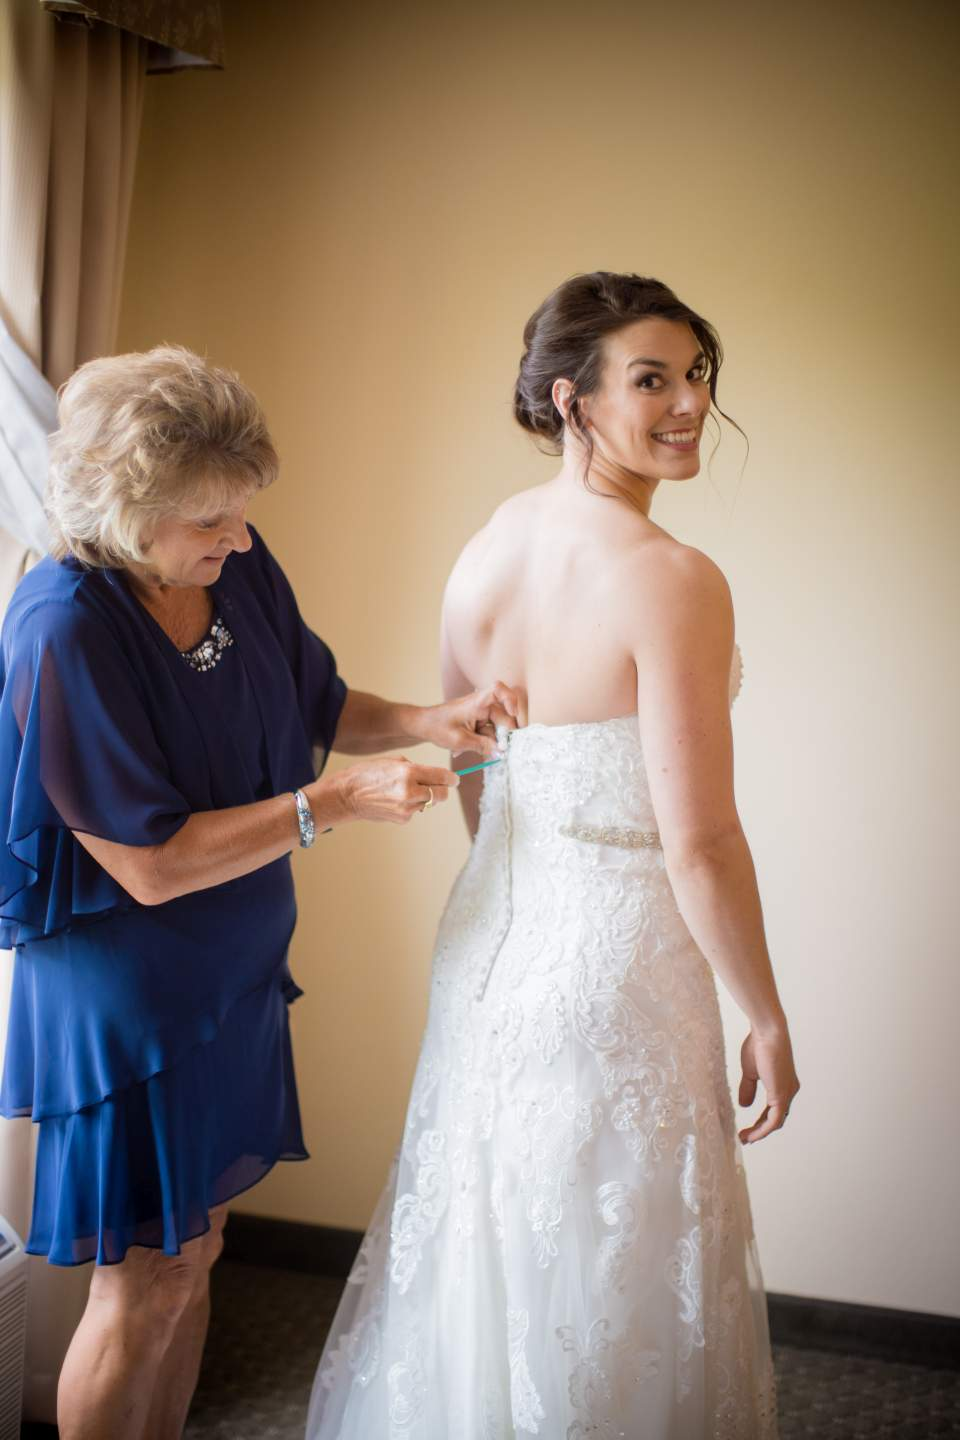 bride smiling while she gets ready for her wedding